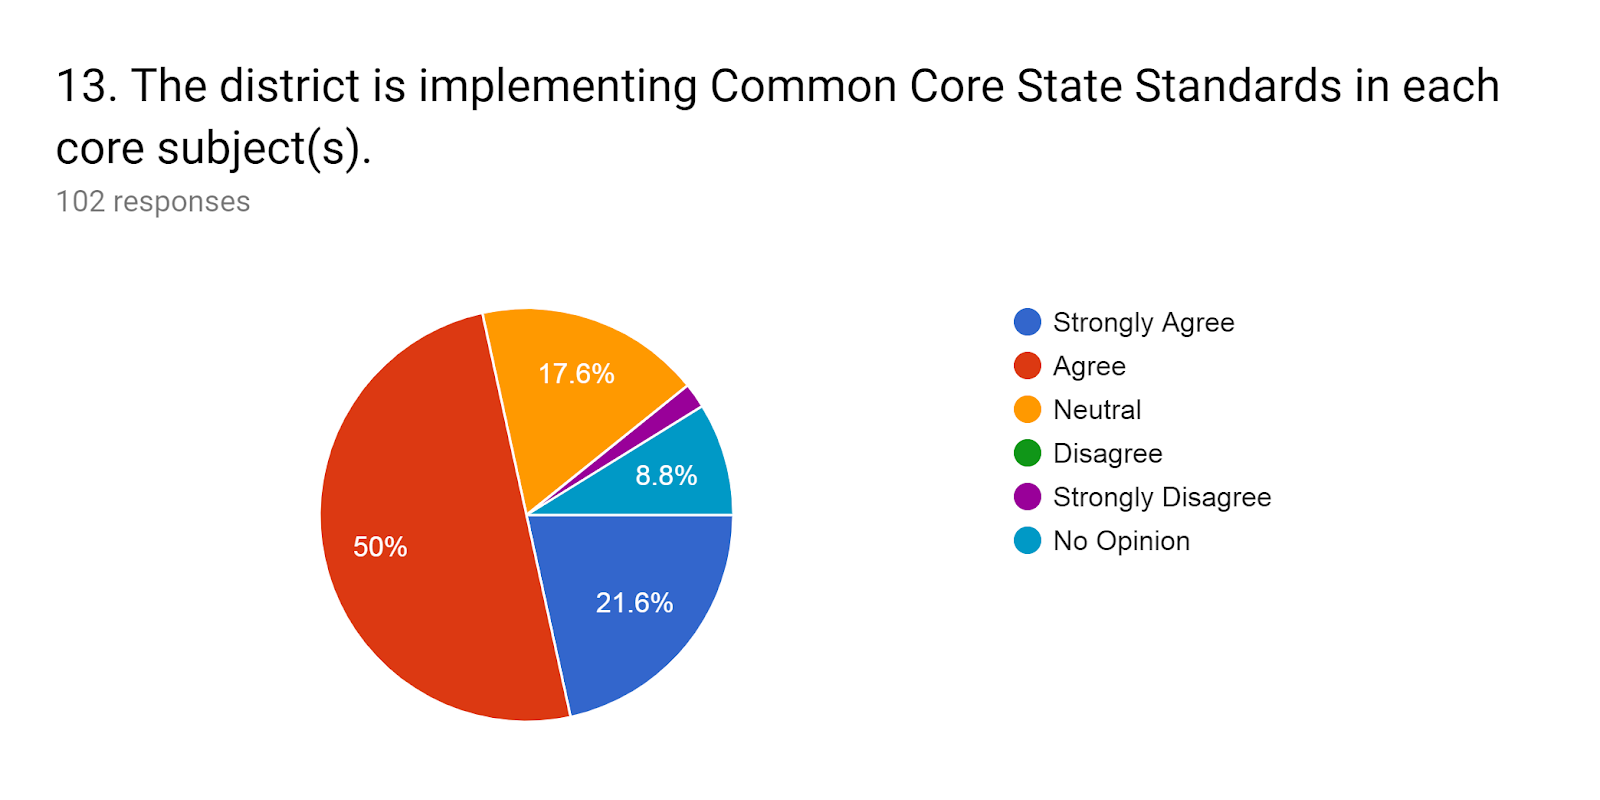 Forms response chart. Question title: 13.The district is implementing Common Core State Standards in each core subject(s).. Number of responses: 102 responses.